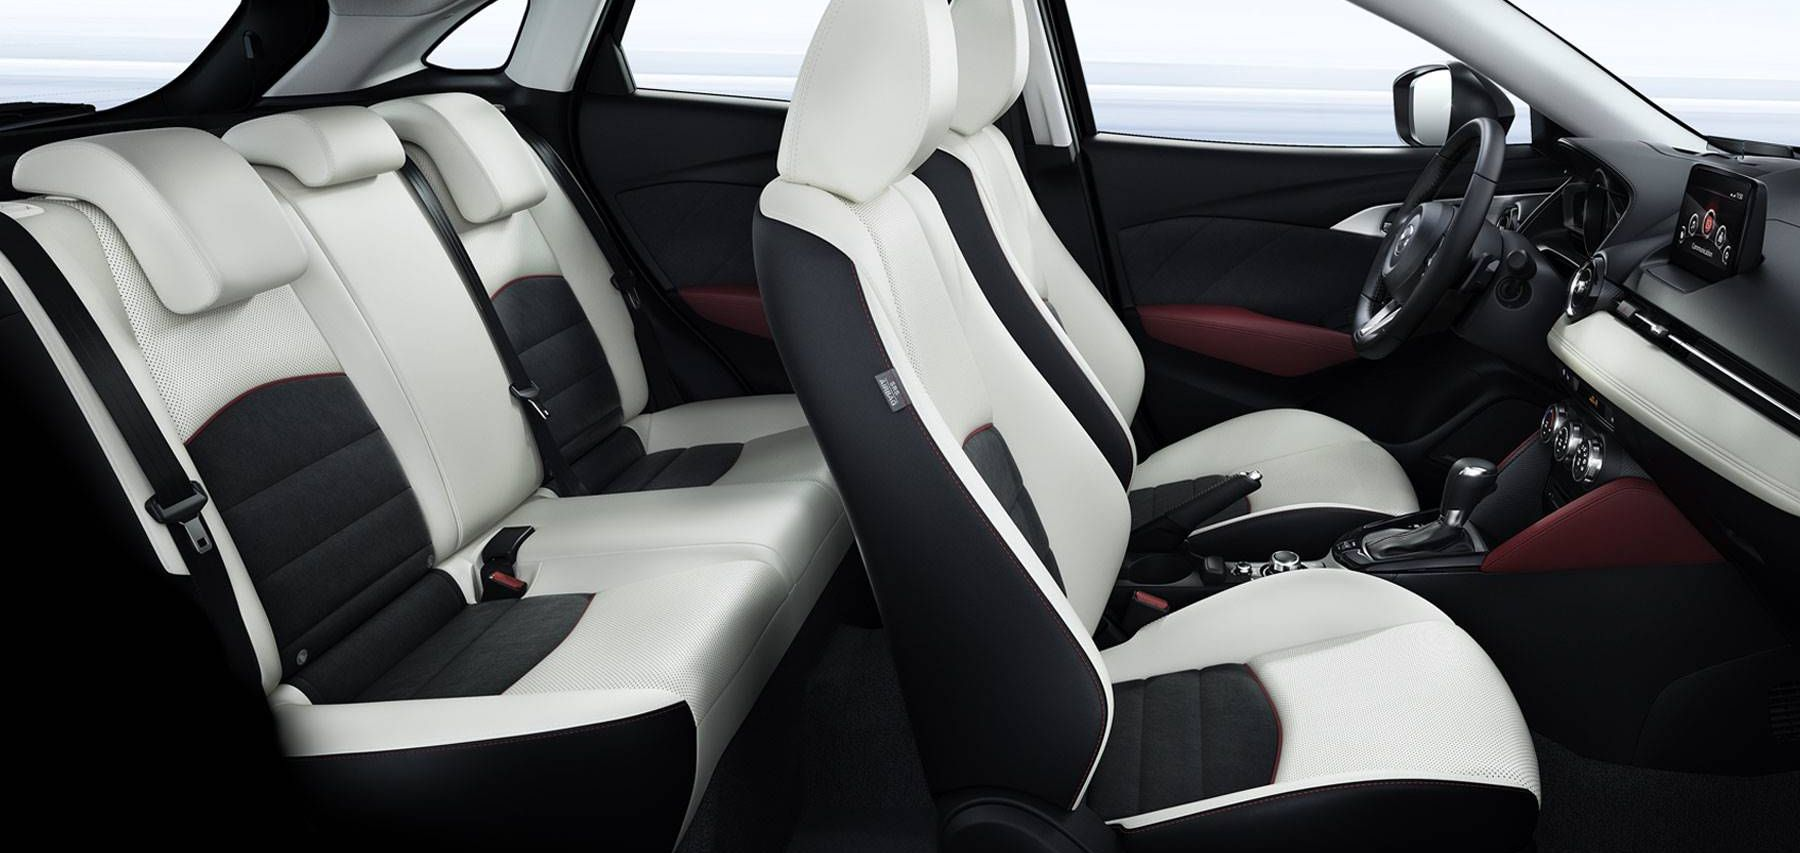 Interior of the 2018 Mazda CX-3